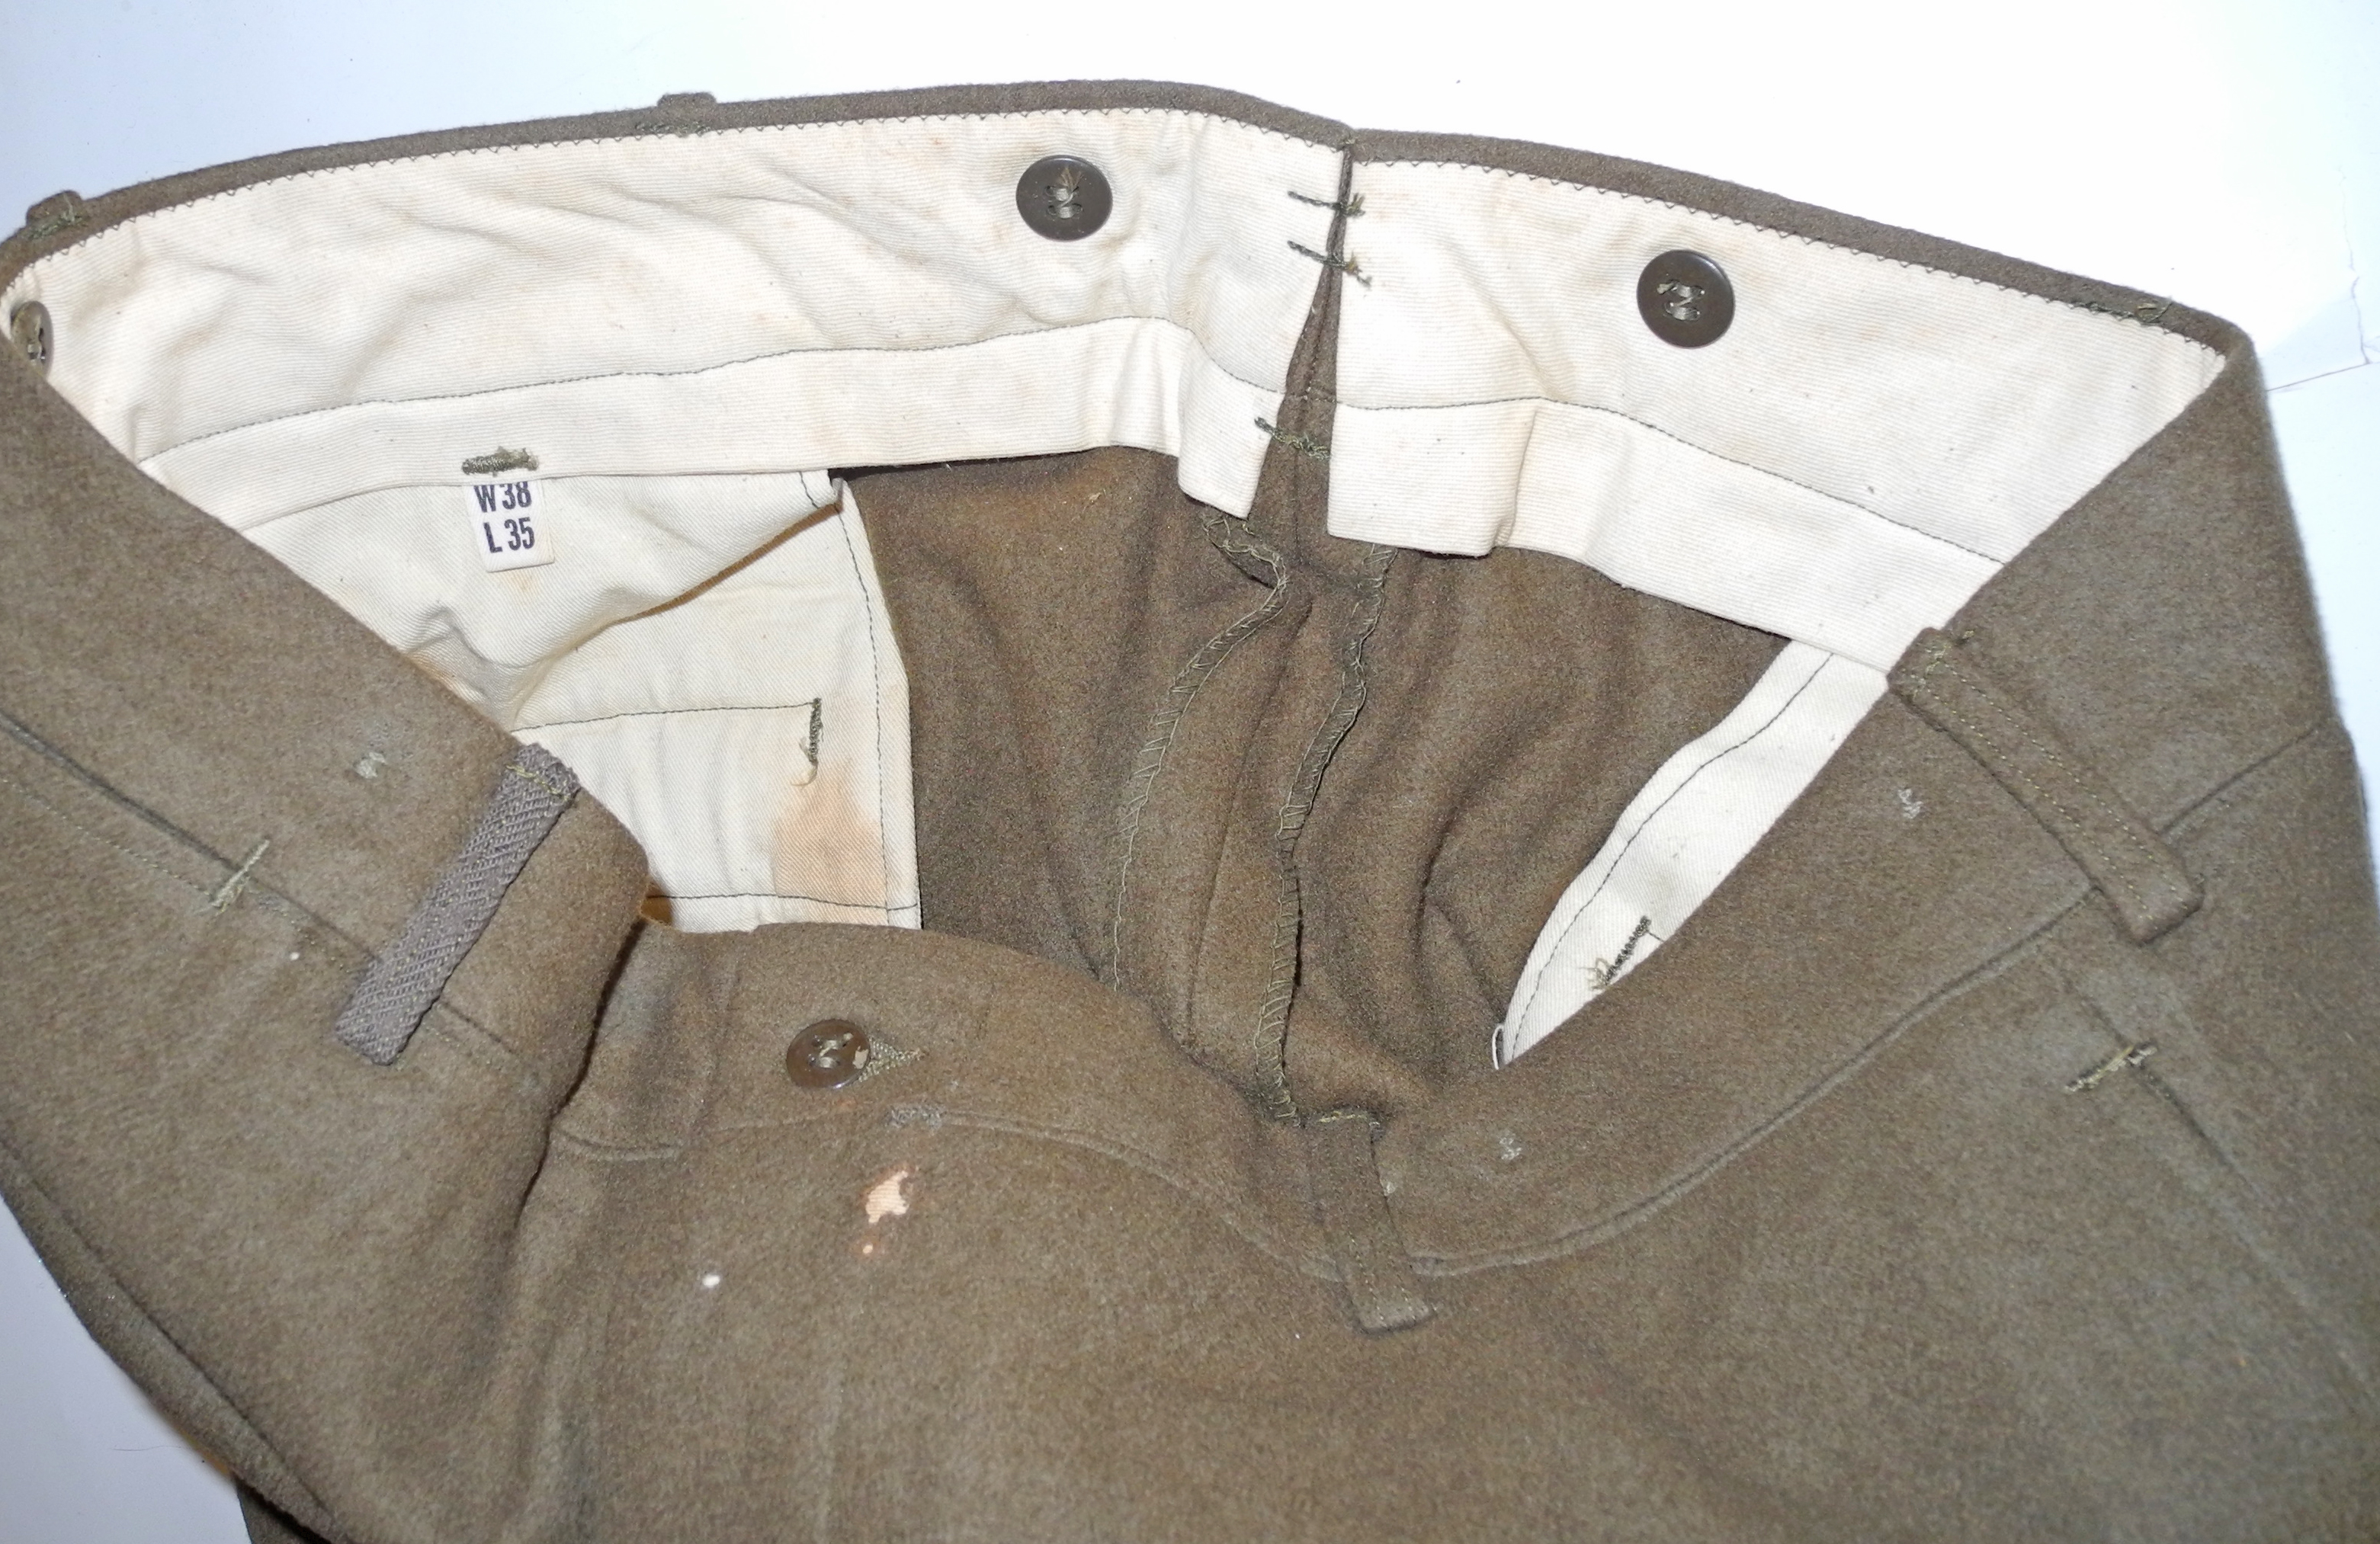 AAF 5th AF enlisted man's uniform Ike jacket, trousers, overseas cap and tie